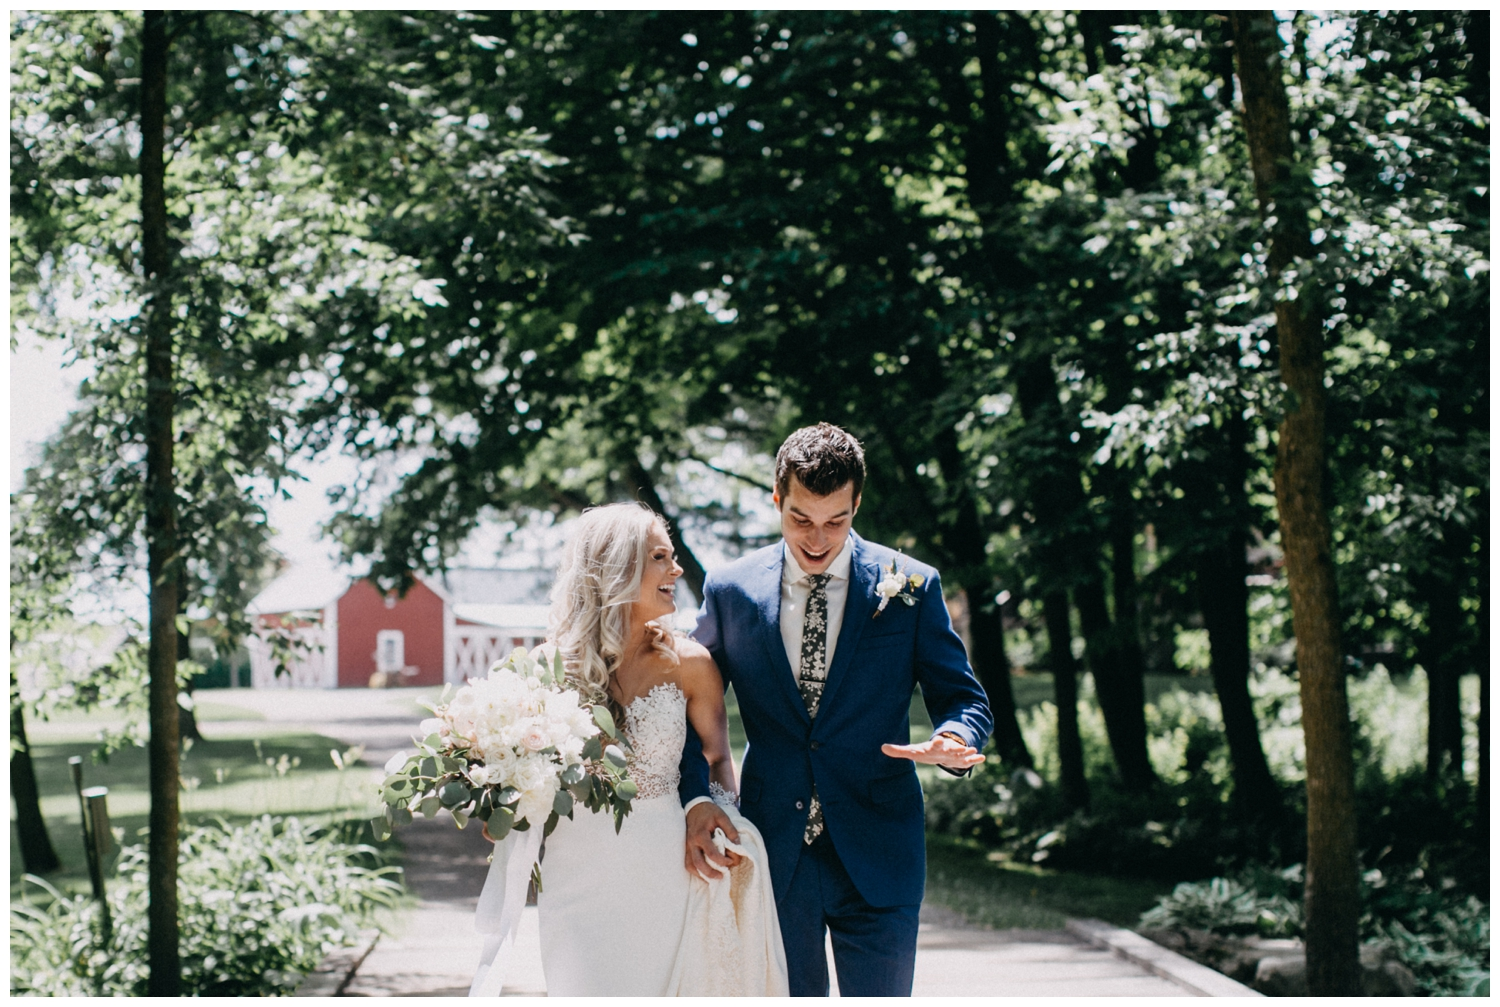 Candid wedding photography at Creekside Farm wedding